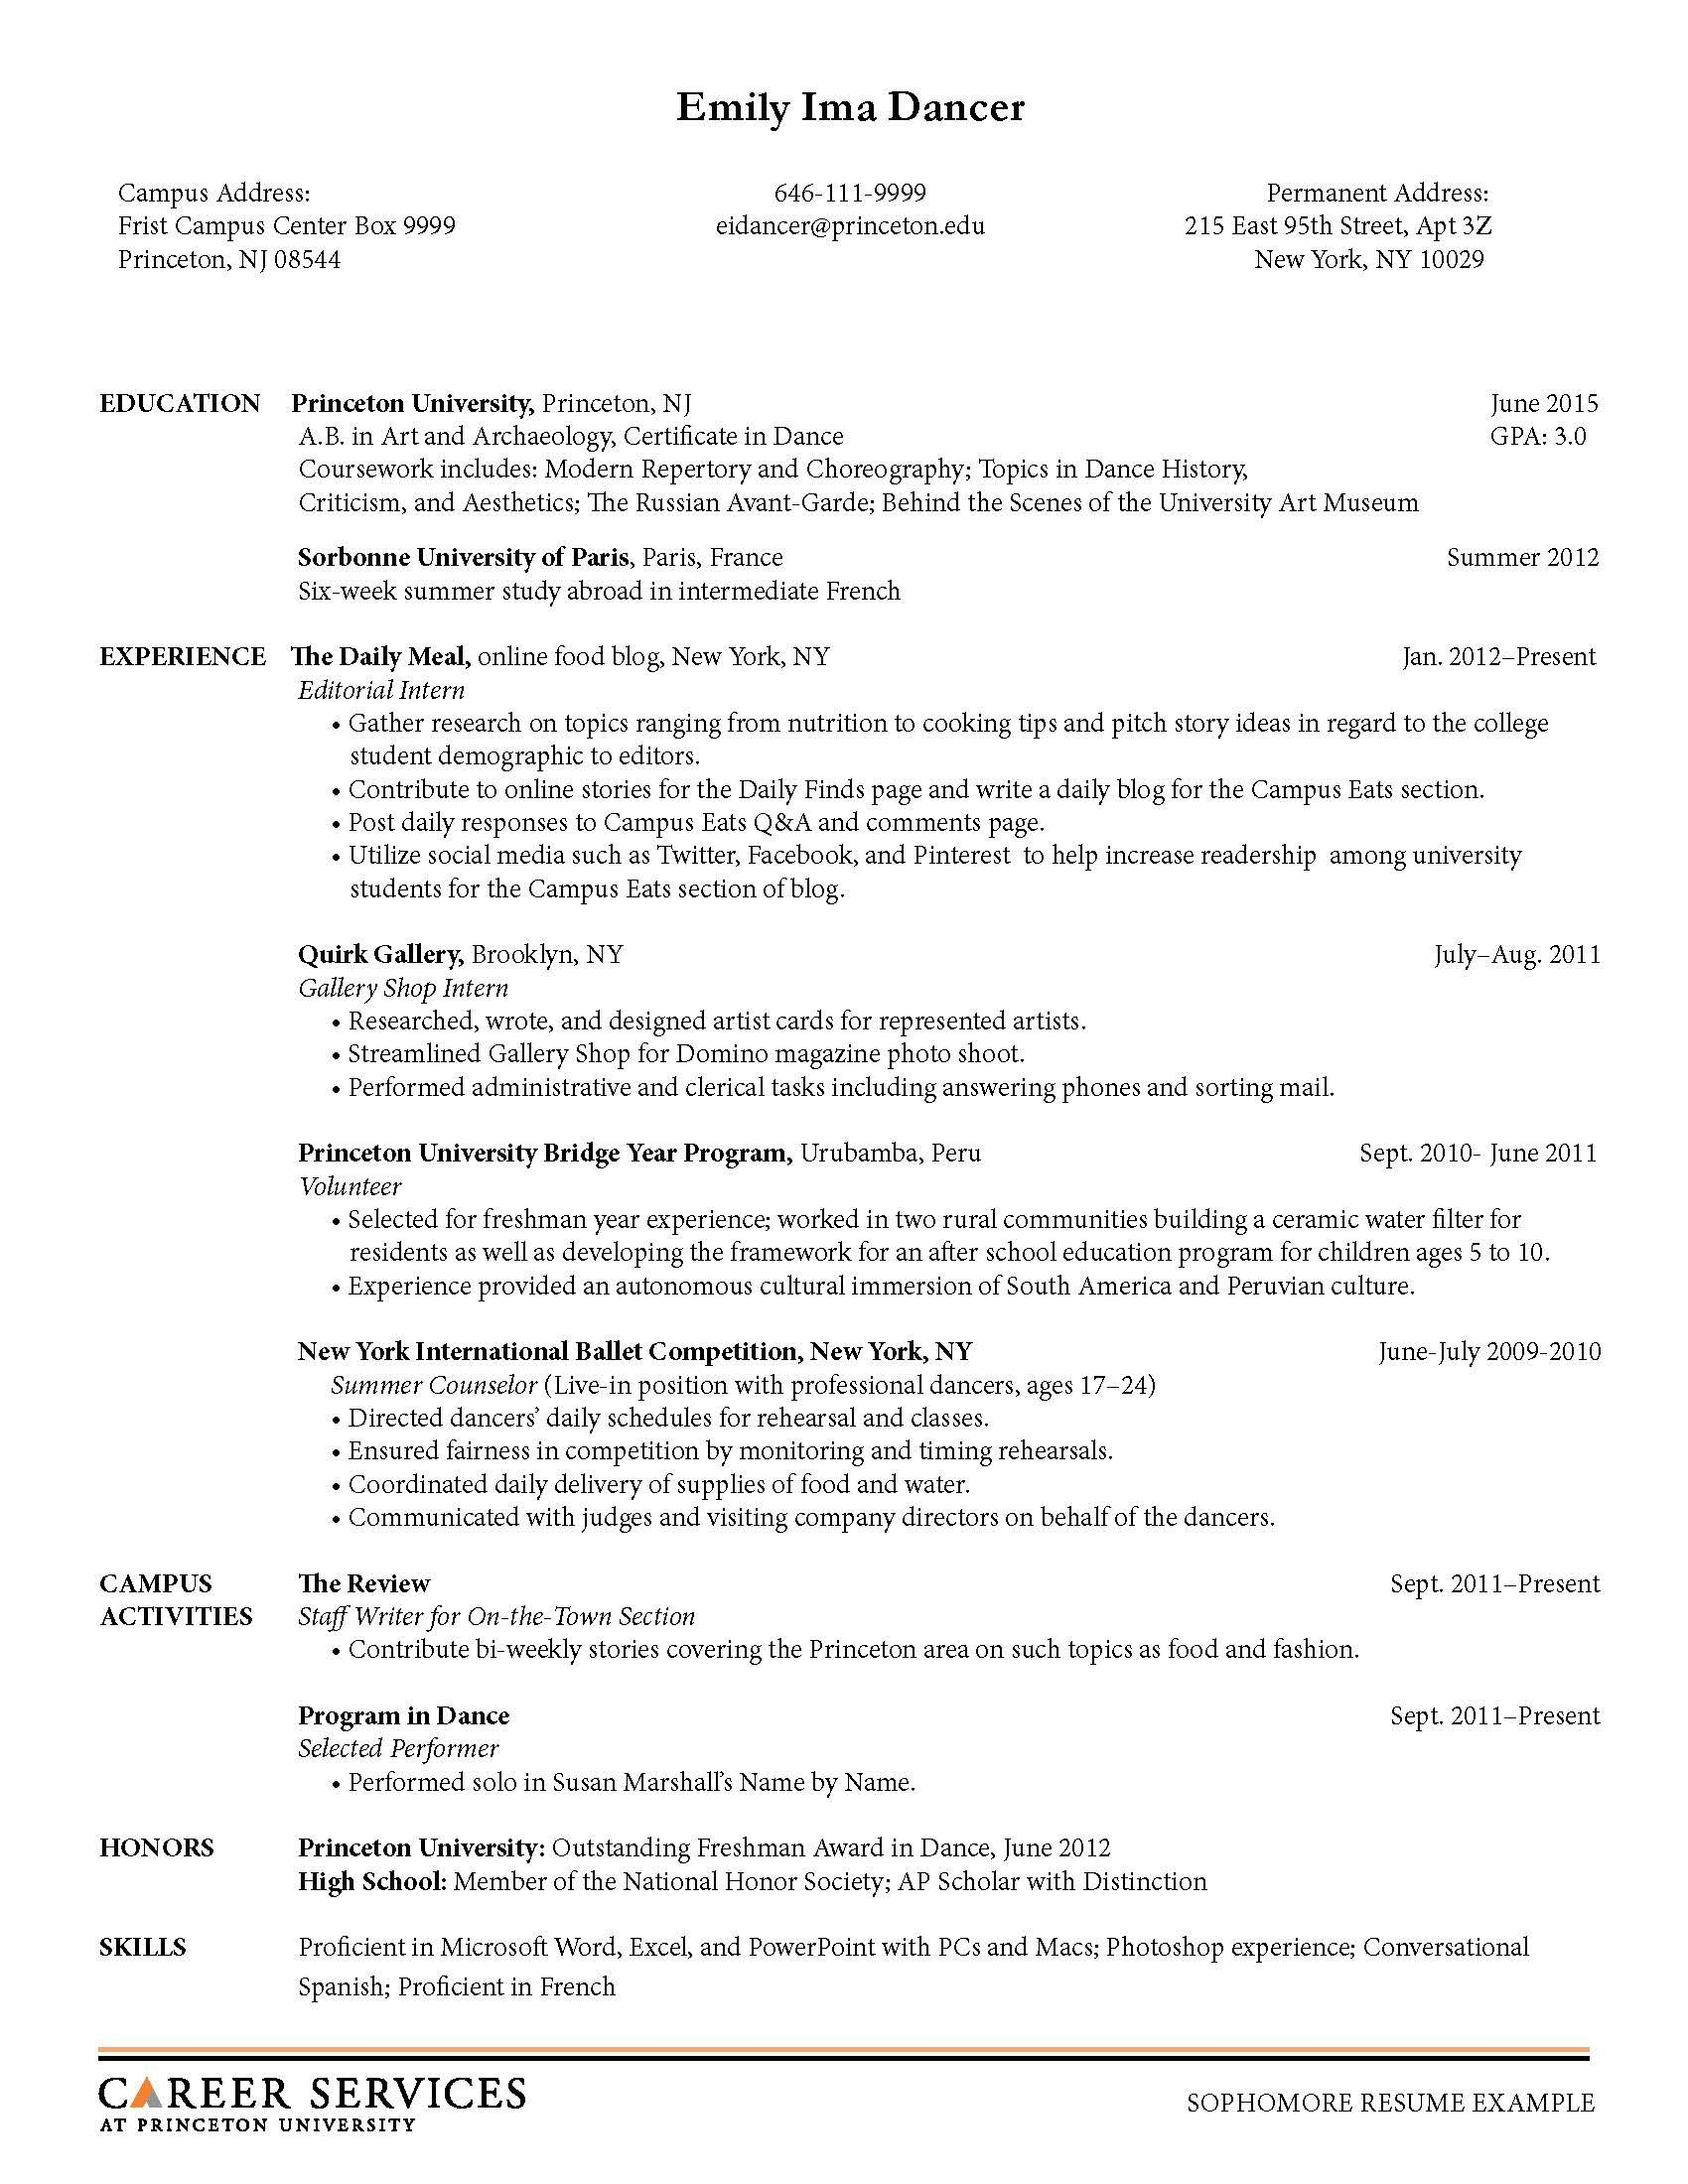 Opposenewapstandardsus  Personable Sample Resume Resume And Career On Pinterest With Remarkable Teaching Resume Examples Besides Experience Resume Furthermore How To Make Resume On Word With Endearing Excellent Resume Also Reference Page Resume In Addition Phd Resume And Dentist Resume As Well As Cover Page Resume Additionally Resume For Dummies From Pinterestcom With Opposenewapstandardsus  Remarkable Sample Resume Resume And Career On Pinterest With Endearing Teaching Resume Examples Besides Experience Resume Furthermore How To Make Resume On Word And Personable Excellent Resume Also Reference Page Resume In Addition Phd Resume From Pinterestcom